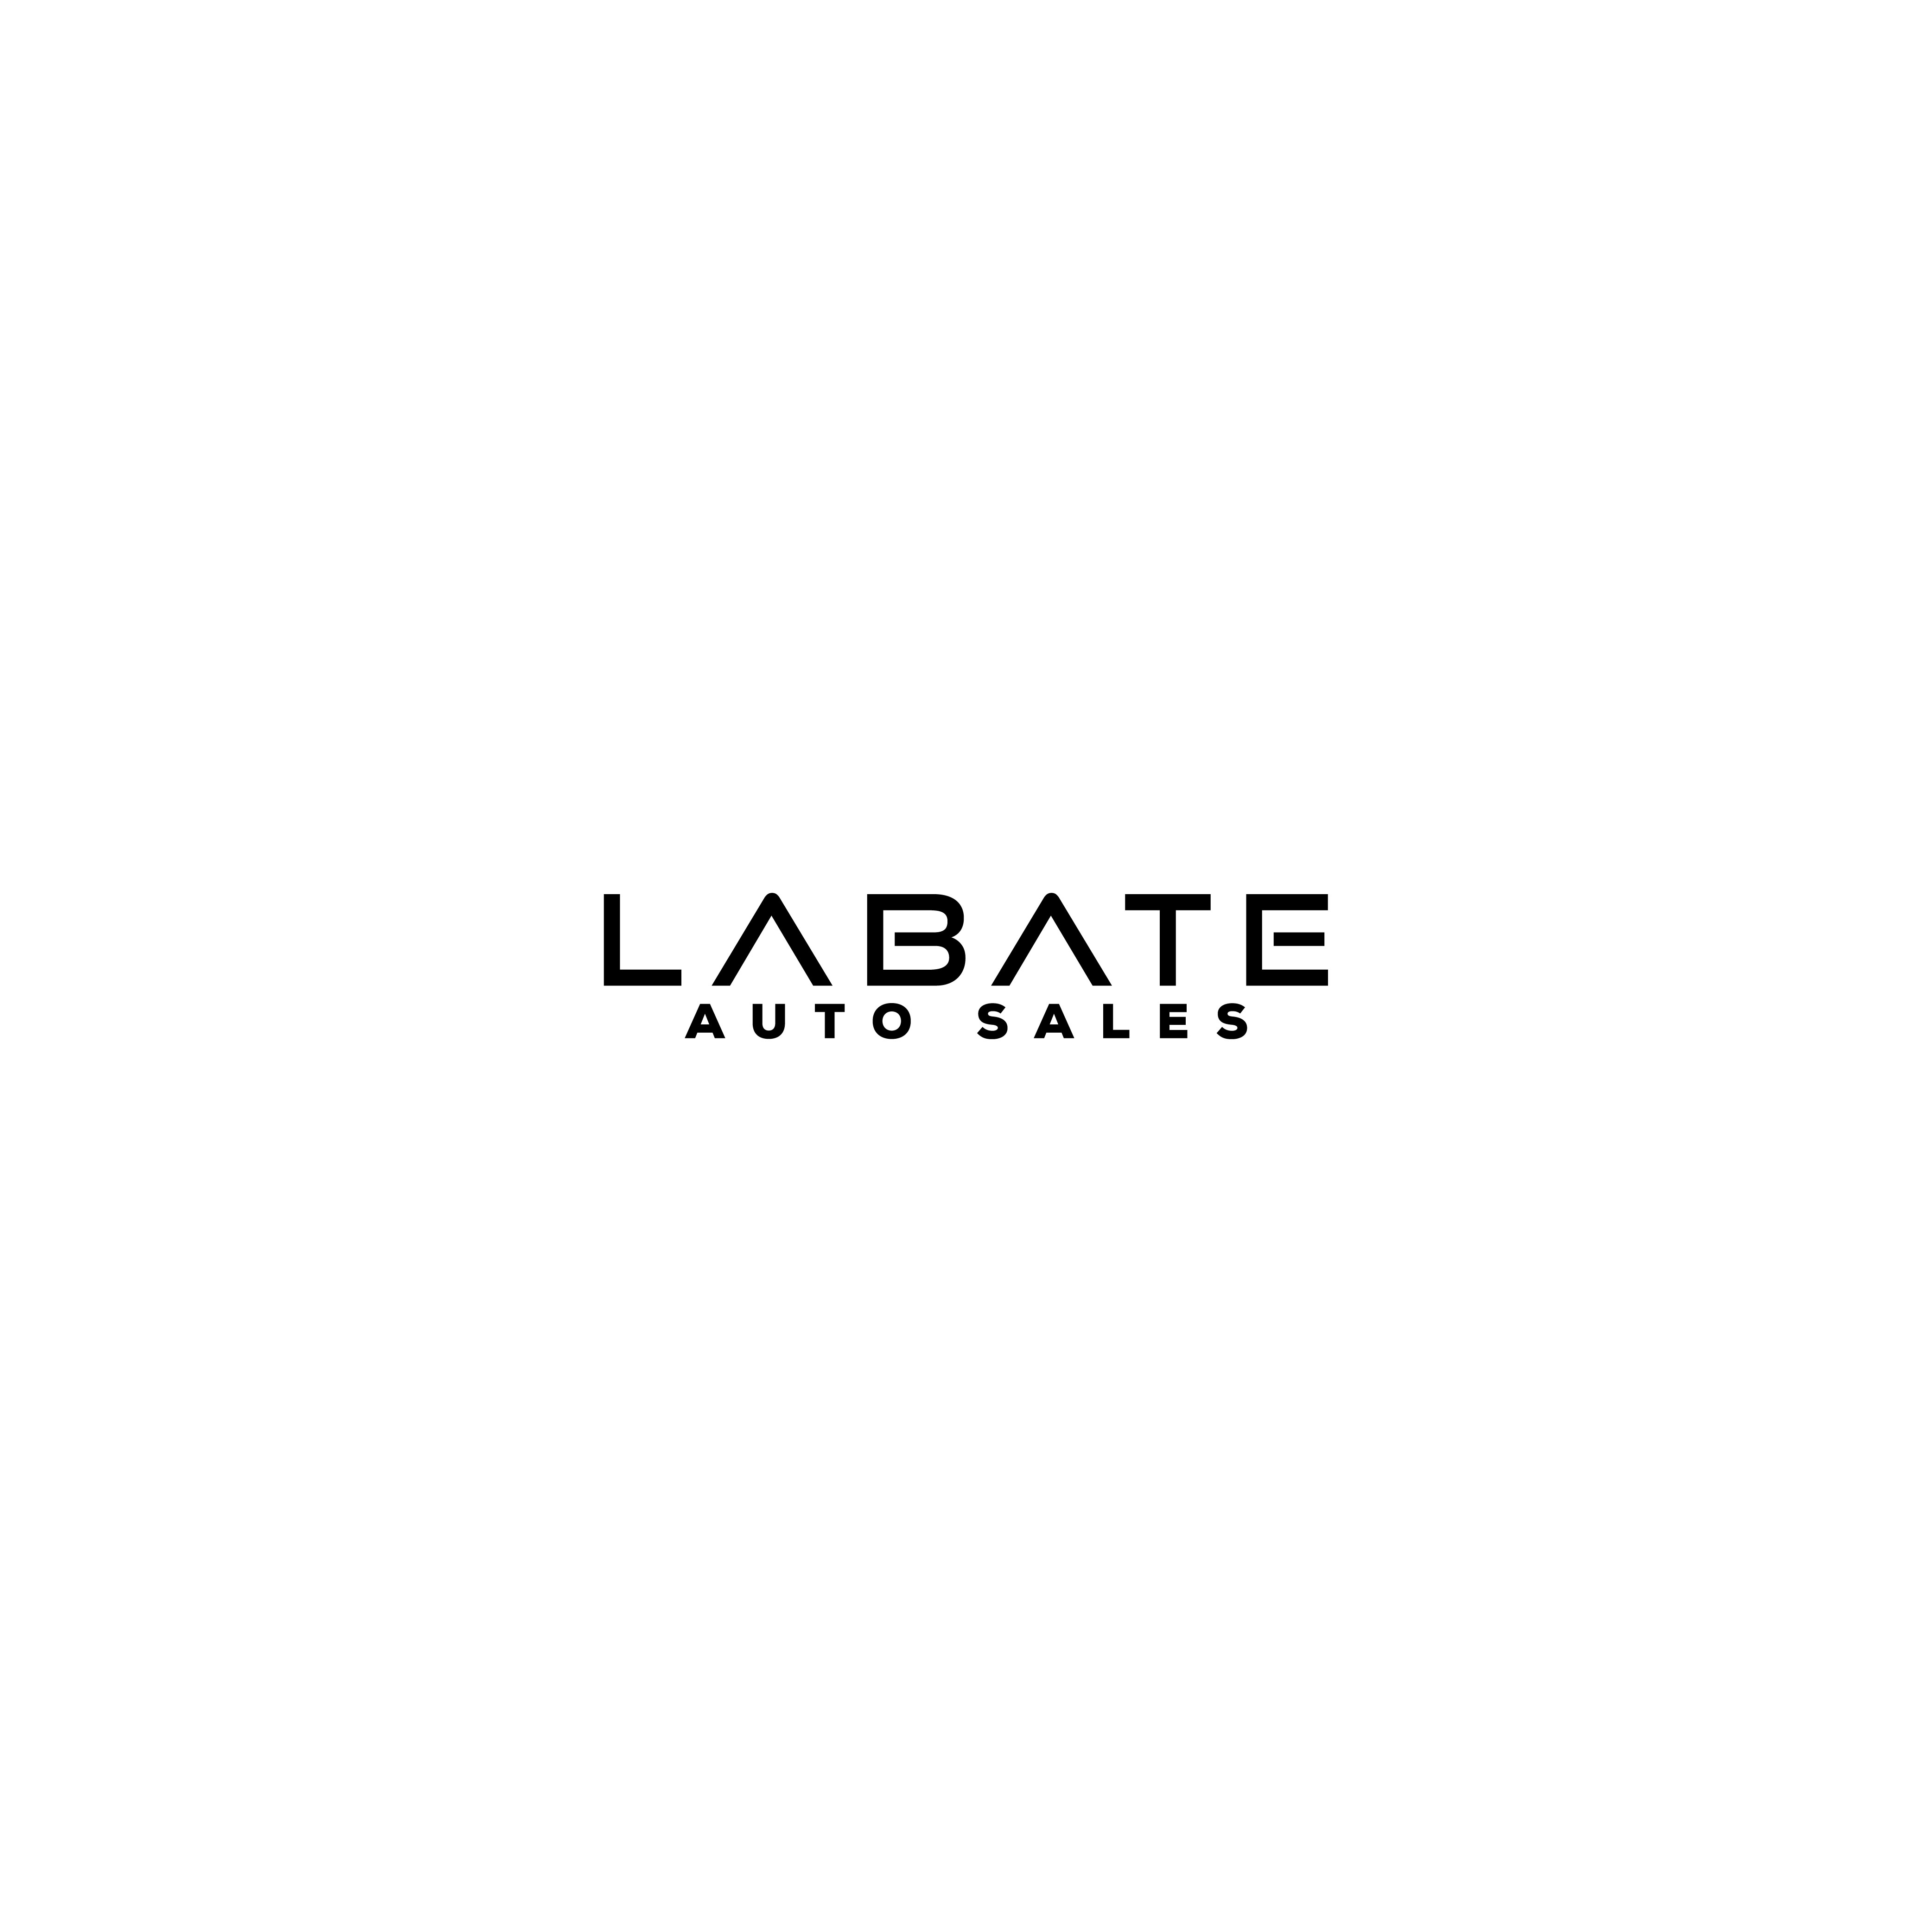 Labate Auto Sales, Inc. Logo